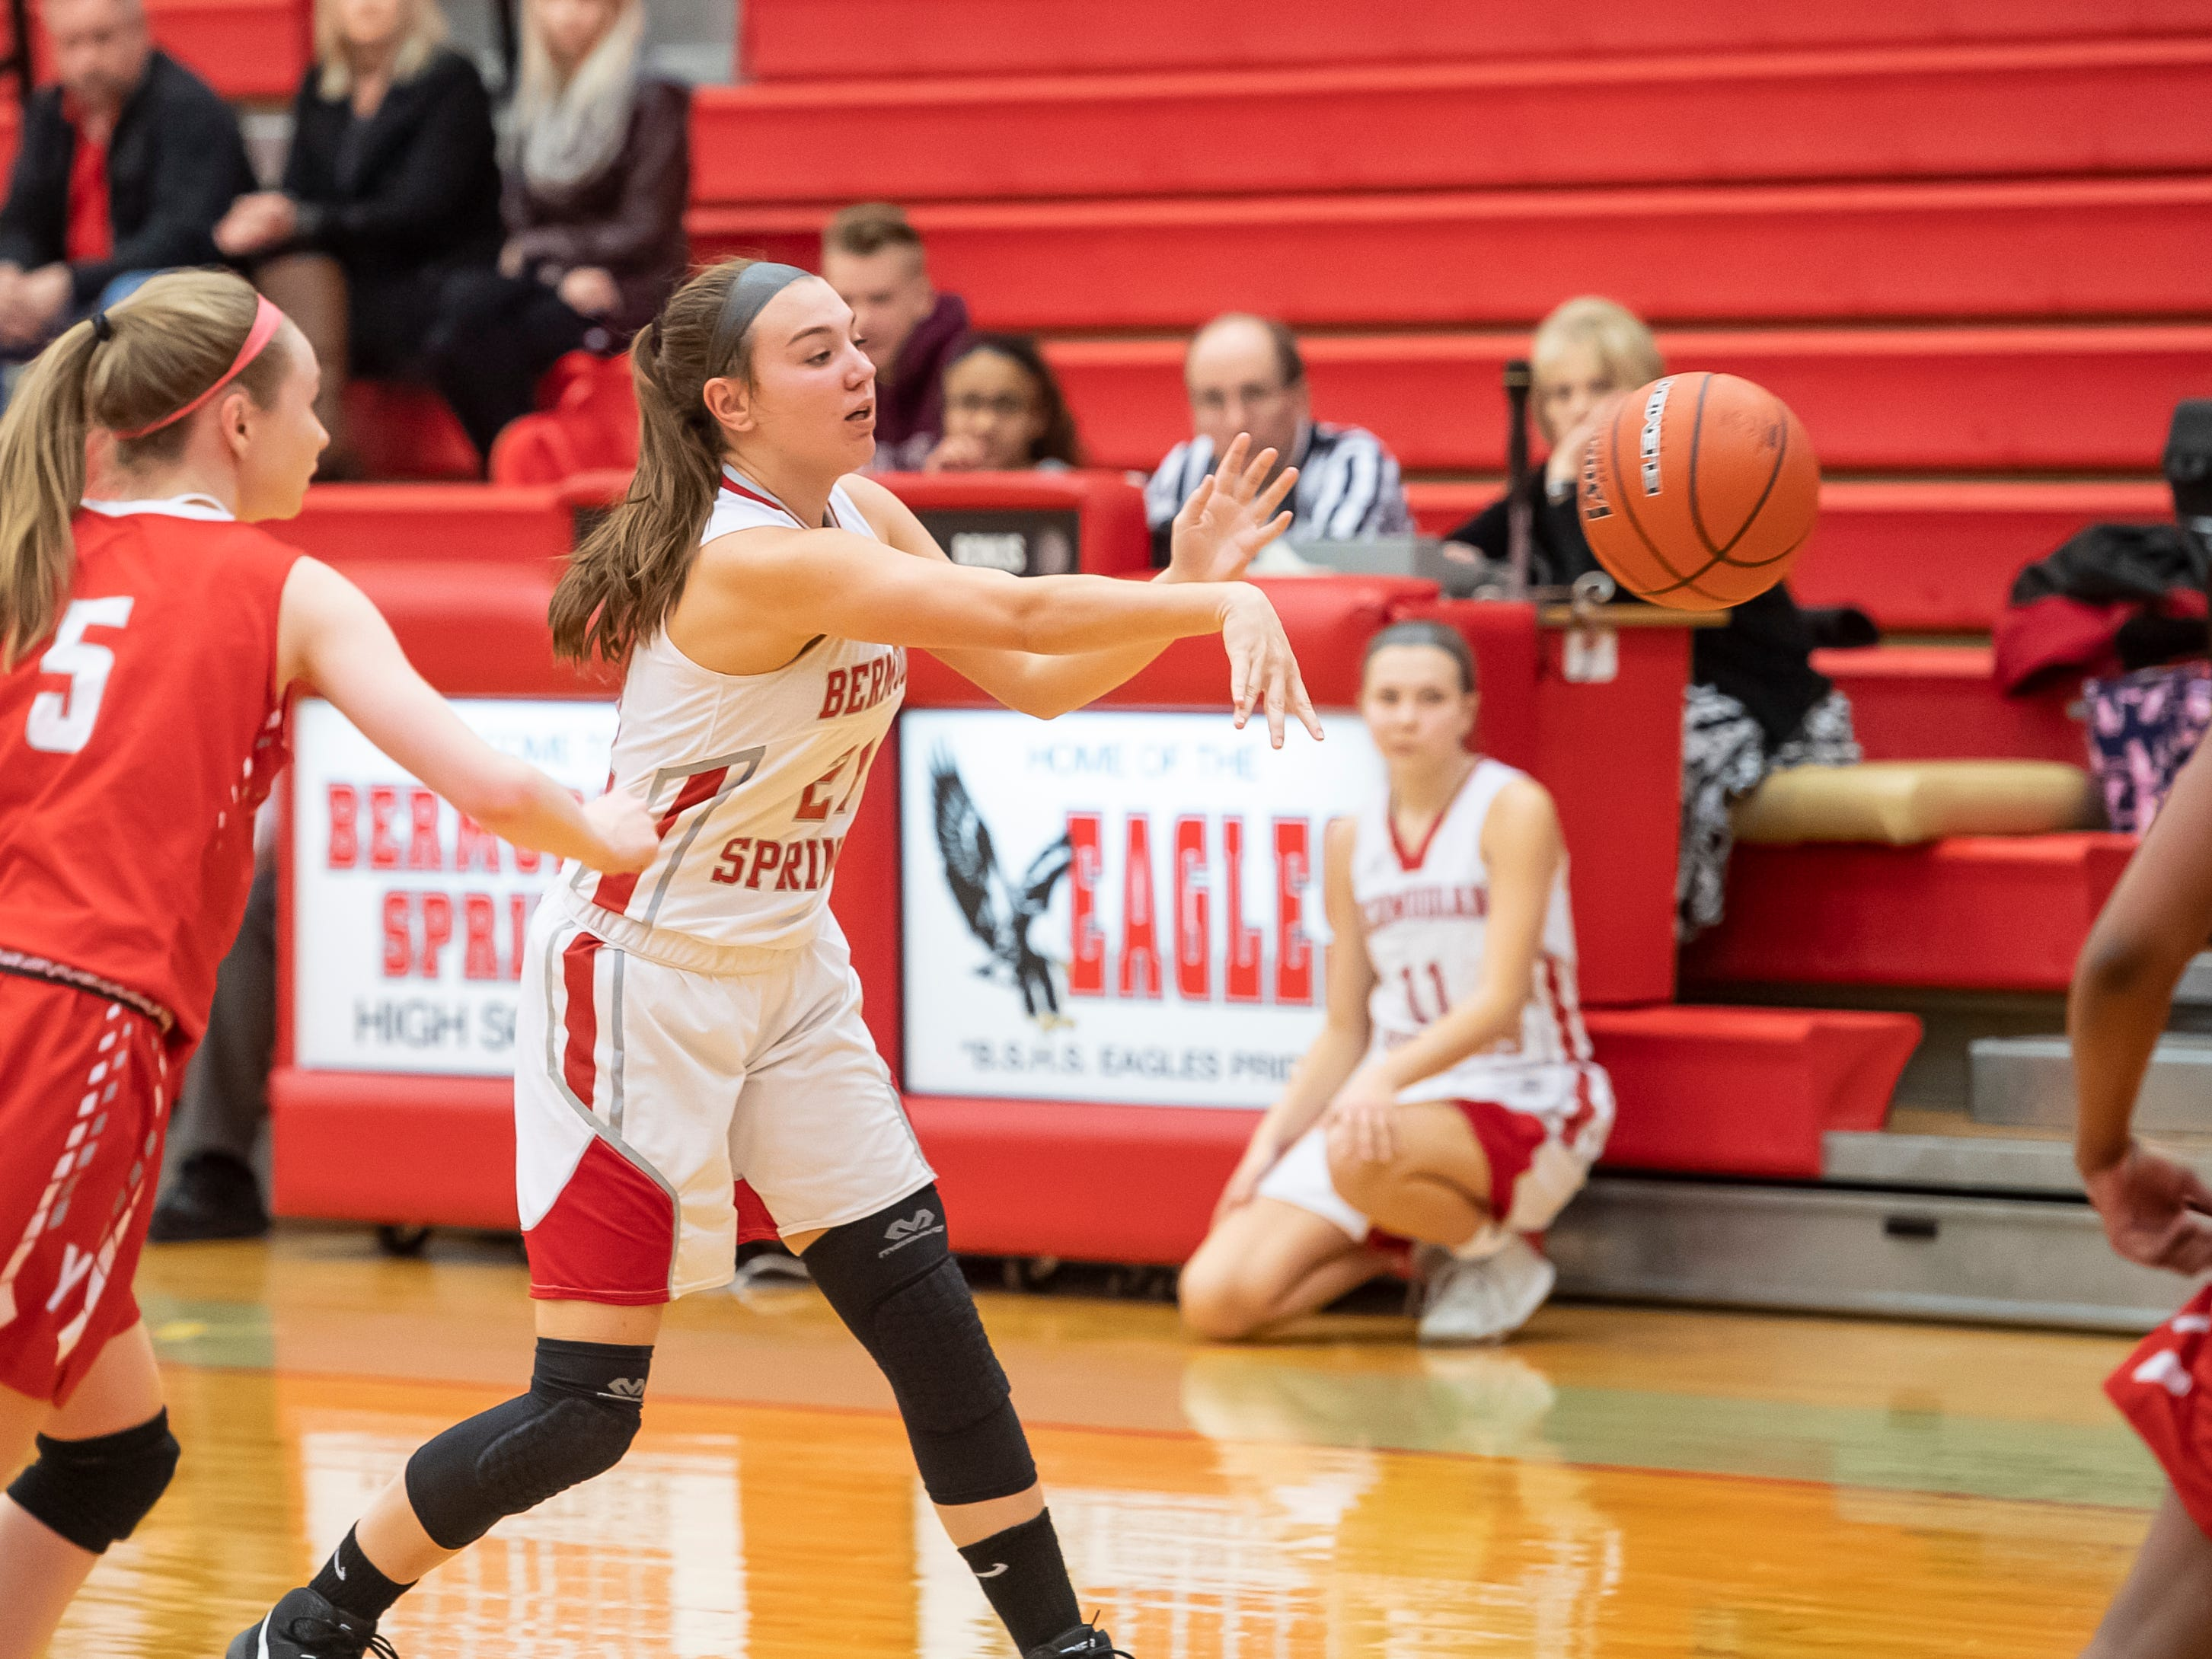 Bermudian Springs' Keri Speelman passes the ball during play against York Country Day School at Bermudian Springs High School on Monday, January 14, 2019. The Eagles won 59-20.